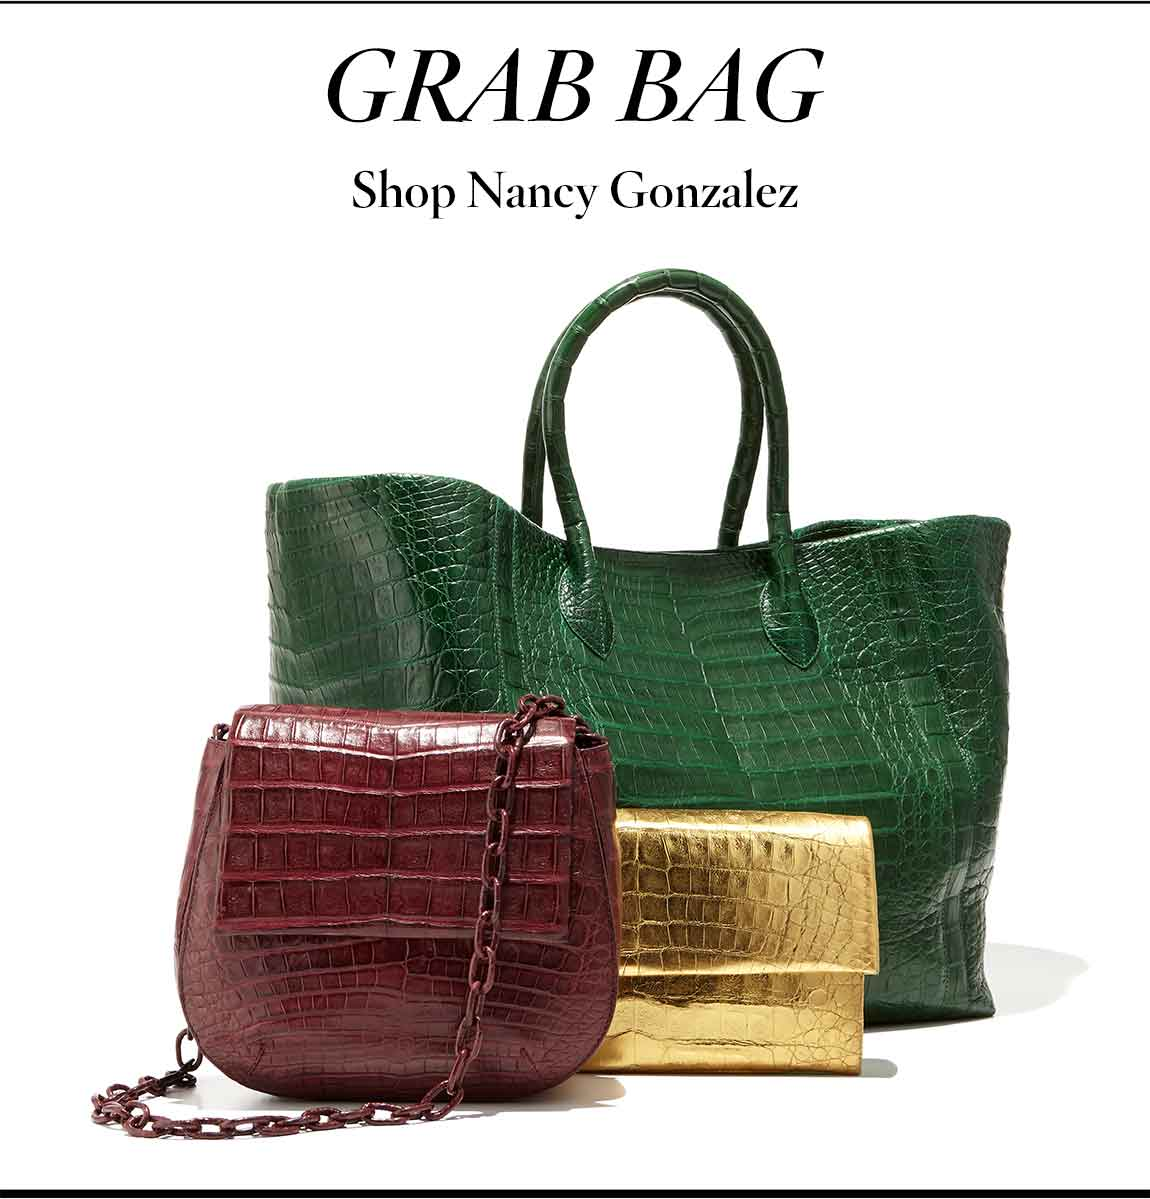 Nancy Gonzalez Jewel Bags